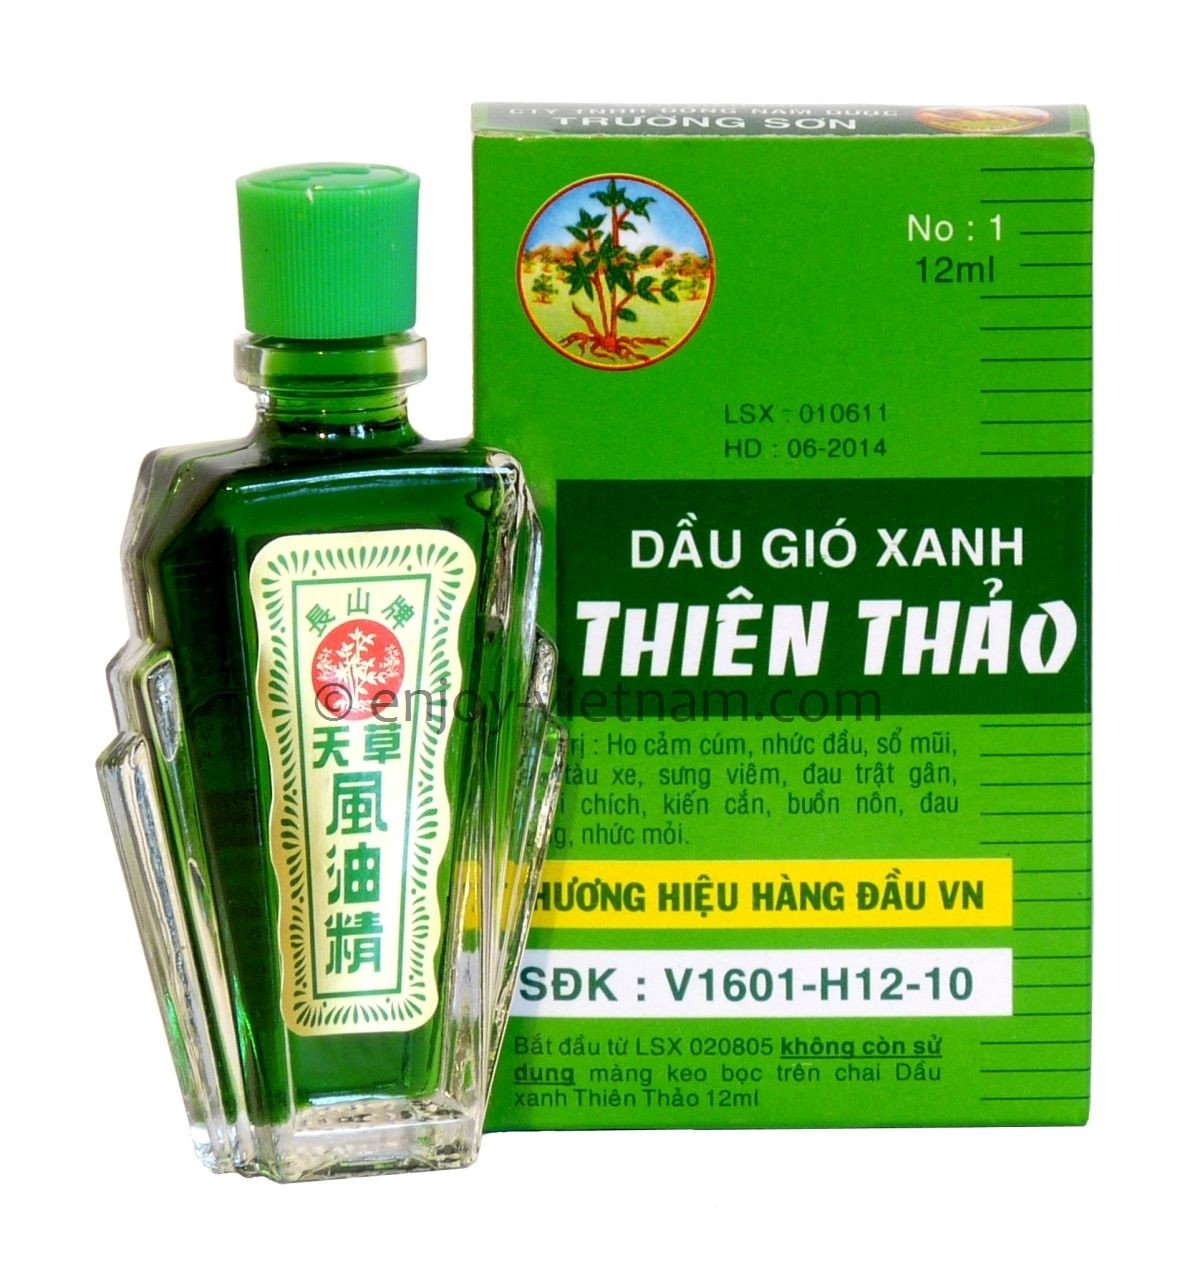 Thien thao medicated oil green medicated oil made in